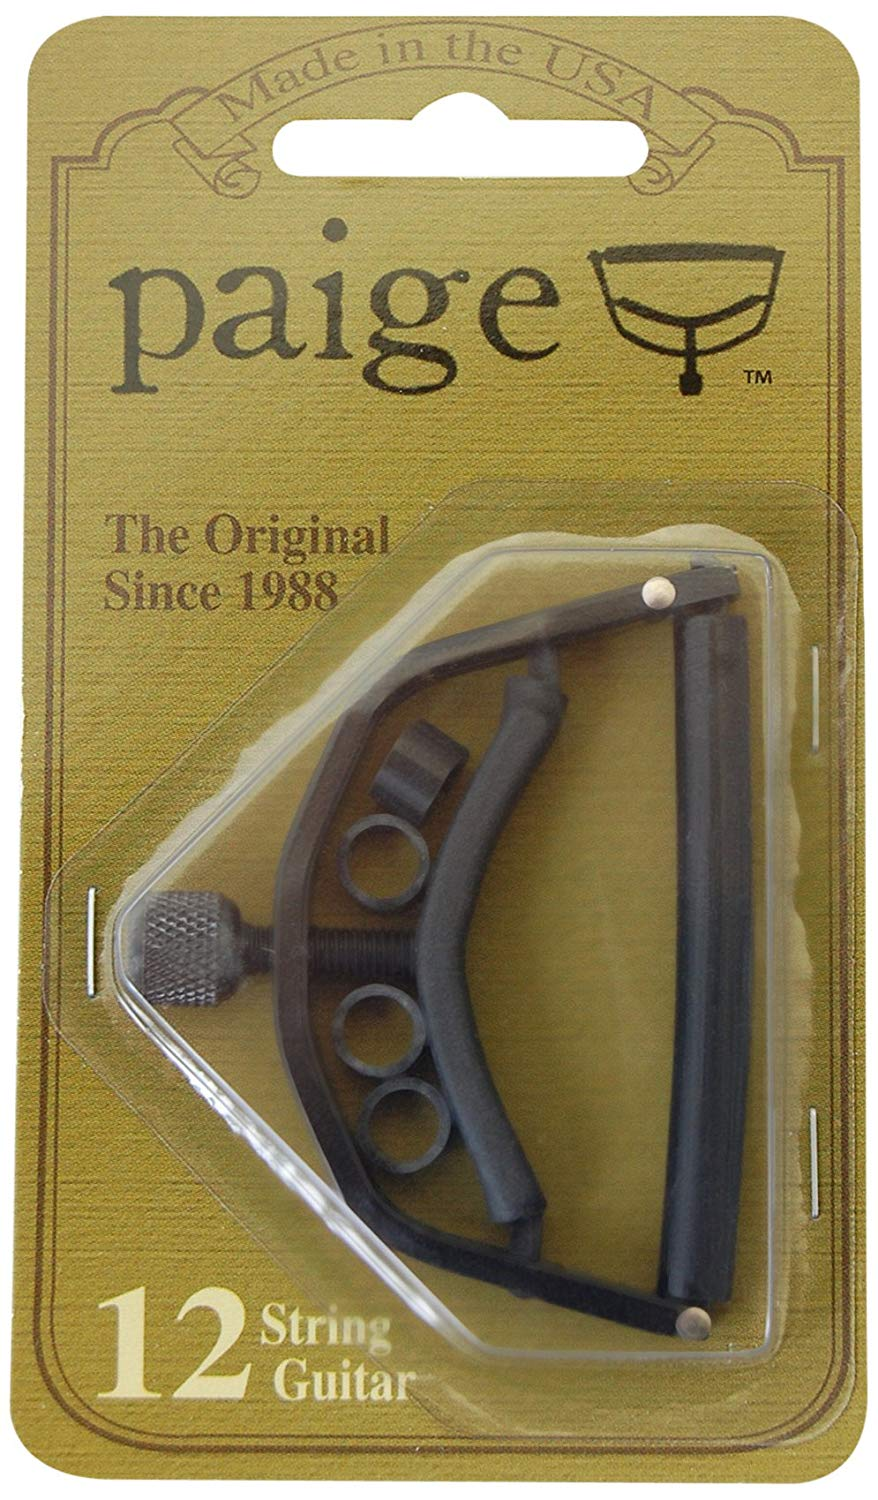 Paige P12E 12-String Guitar Capo - Black